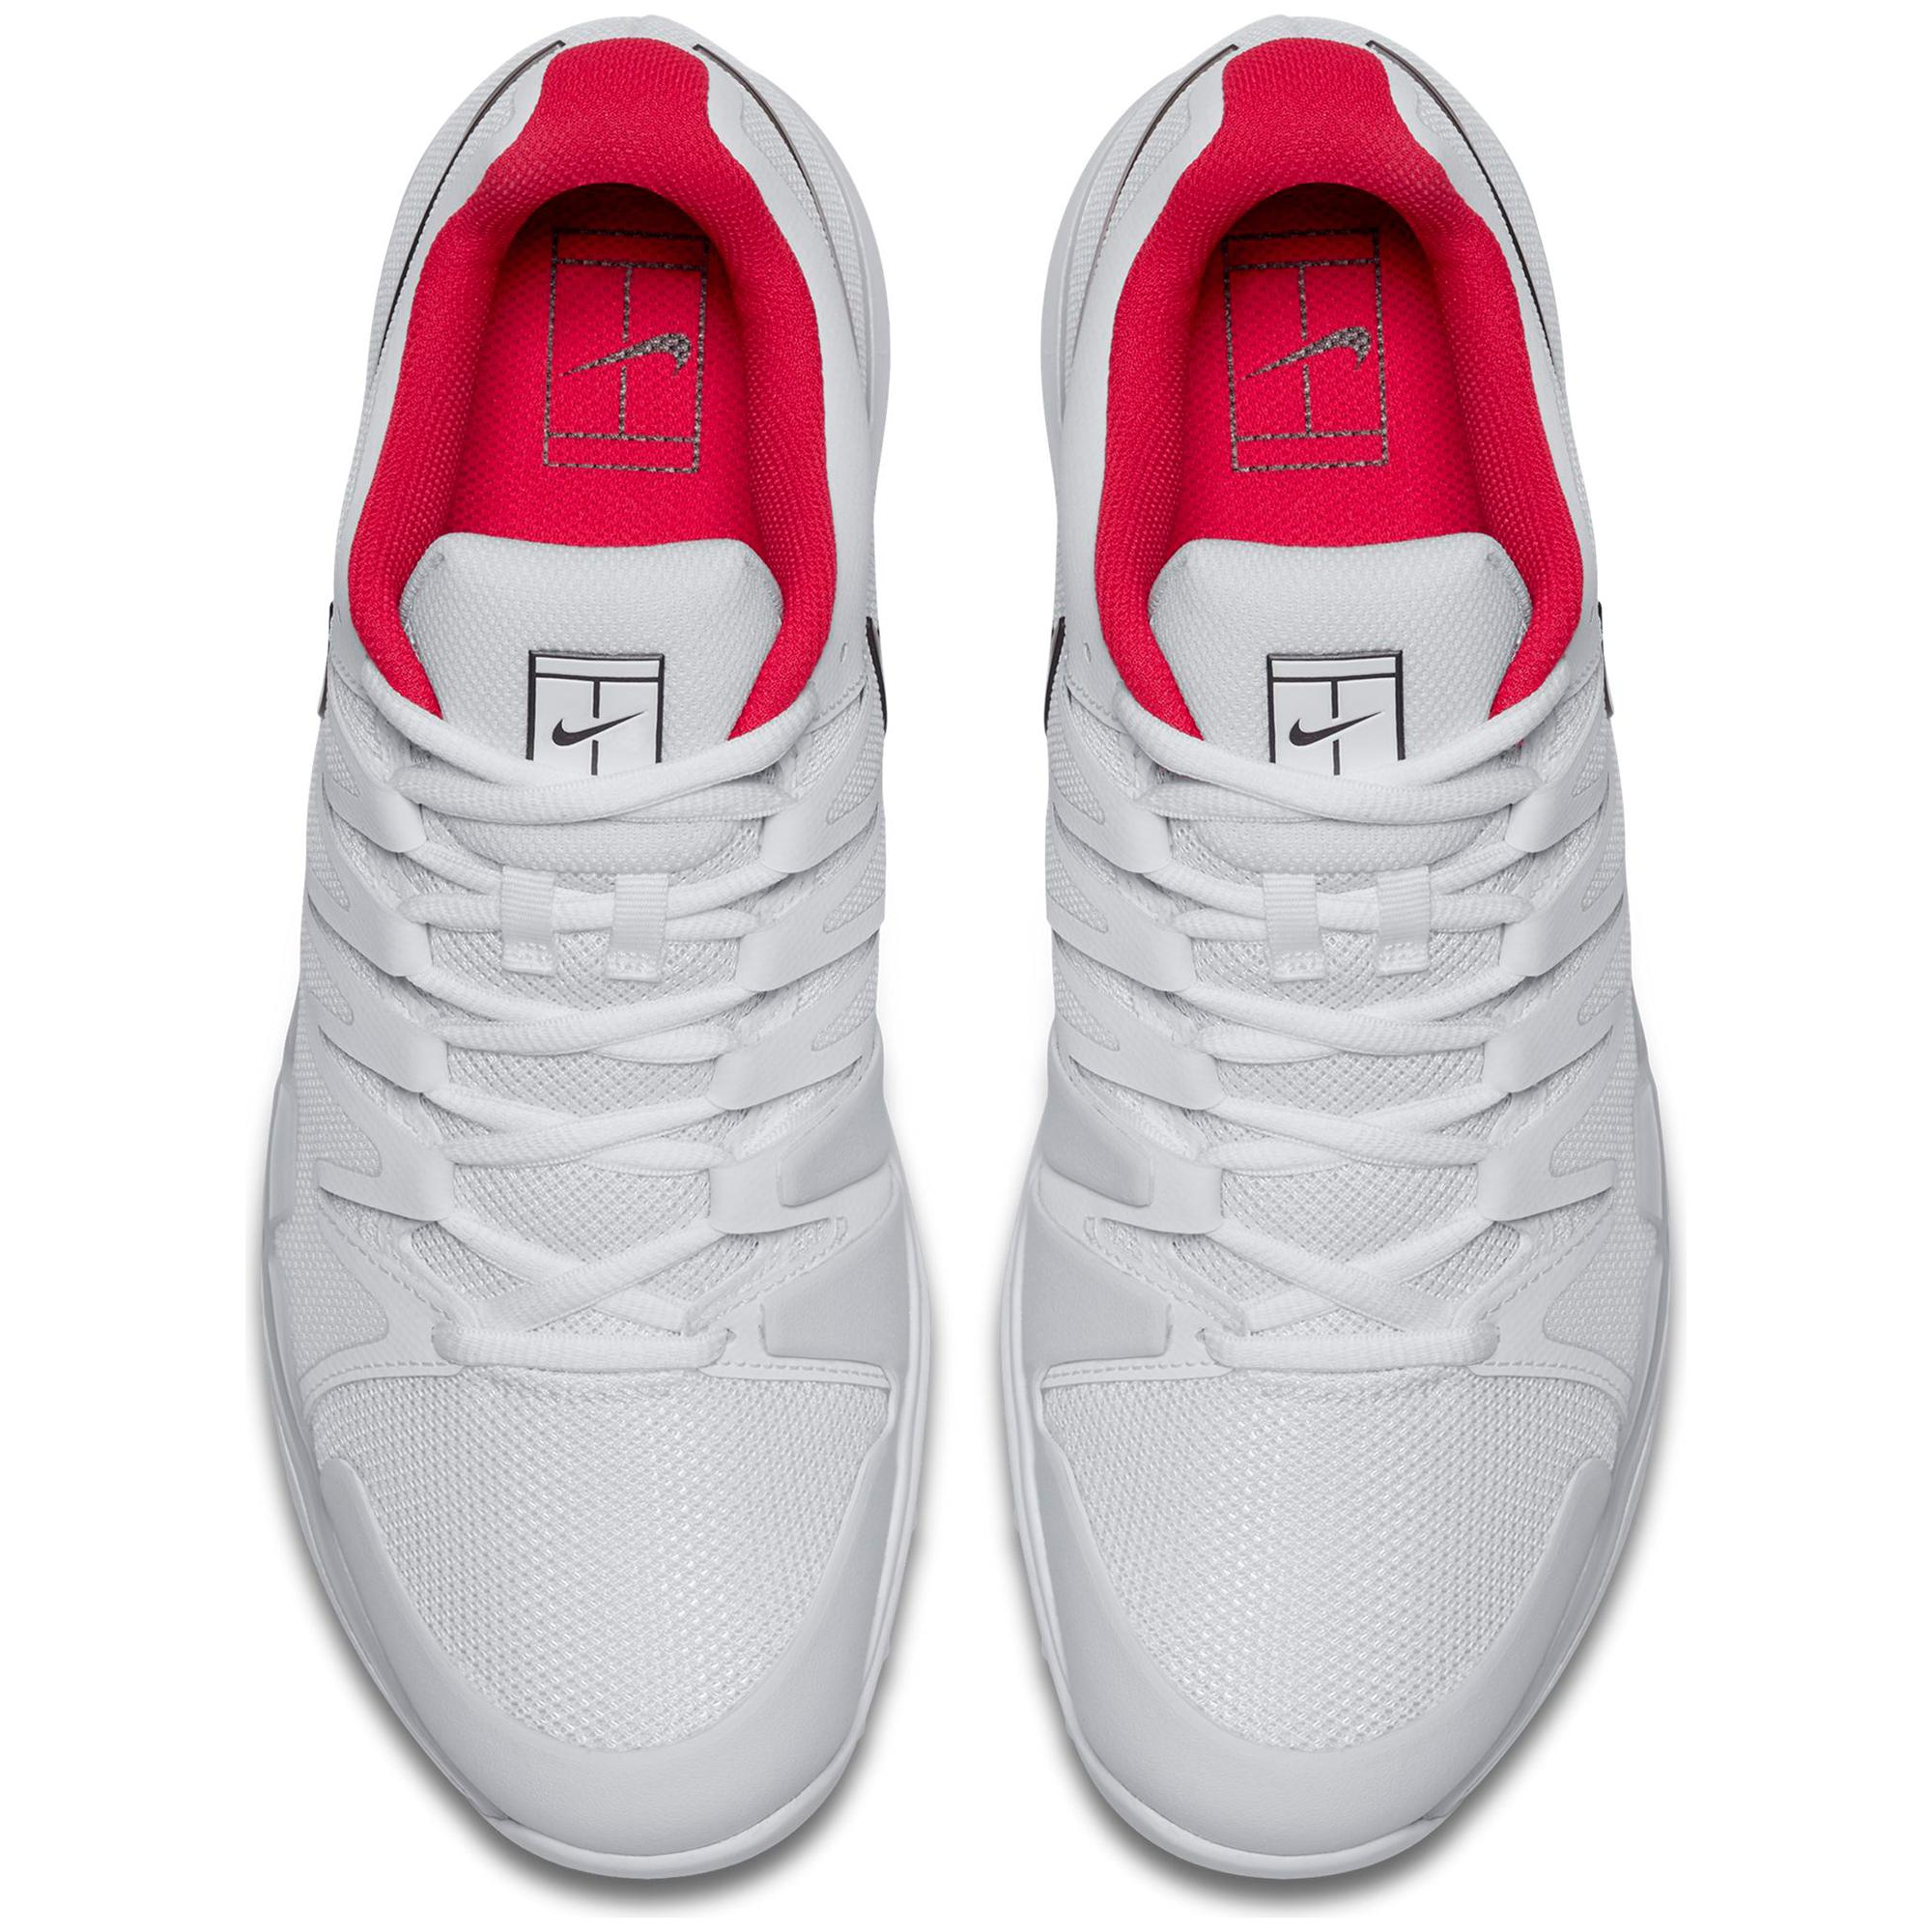 Air Max 90 Essentials Womens Nike Hyperfuse 2010 Low For Sale In ... c7f675c23